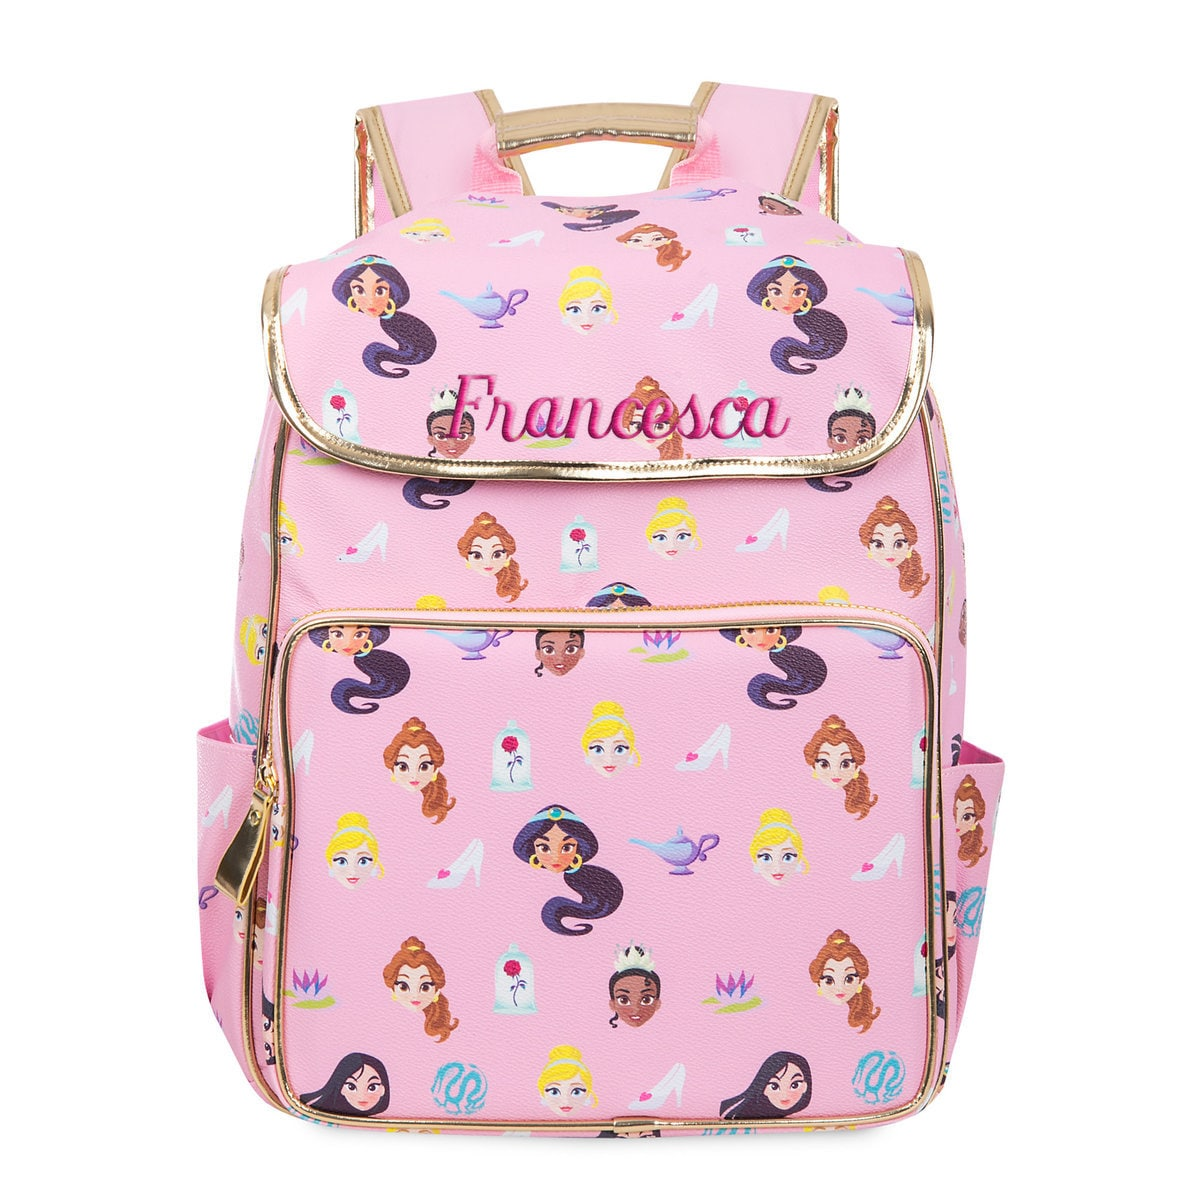 d4b434ab7c73 Product Image of Disney Princess Backpack - Personalizable   1